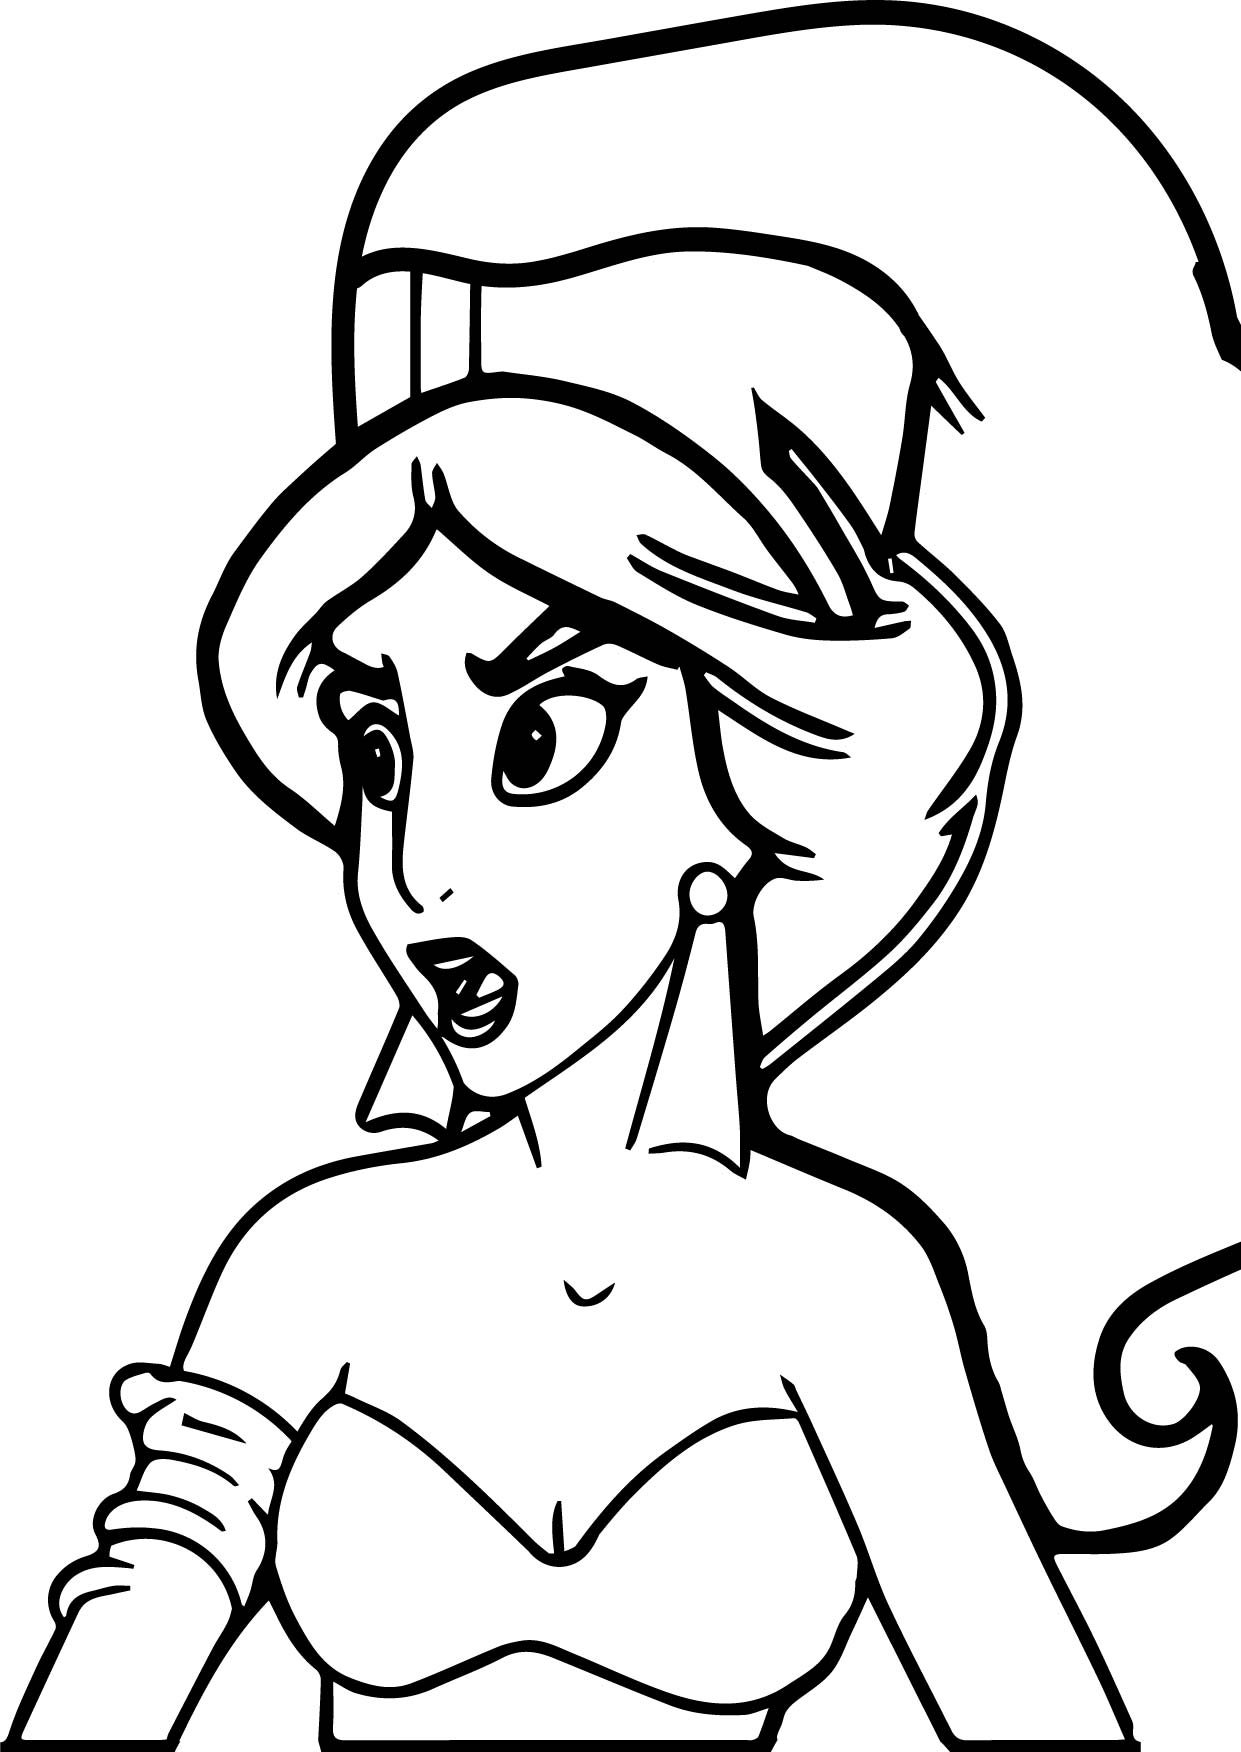 Princess Jasmine From Aladdin Movie Coloring Page